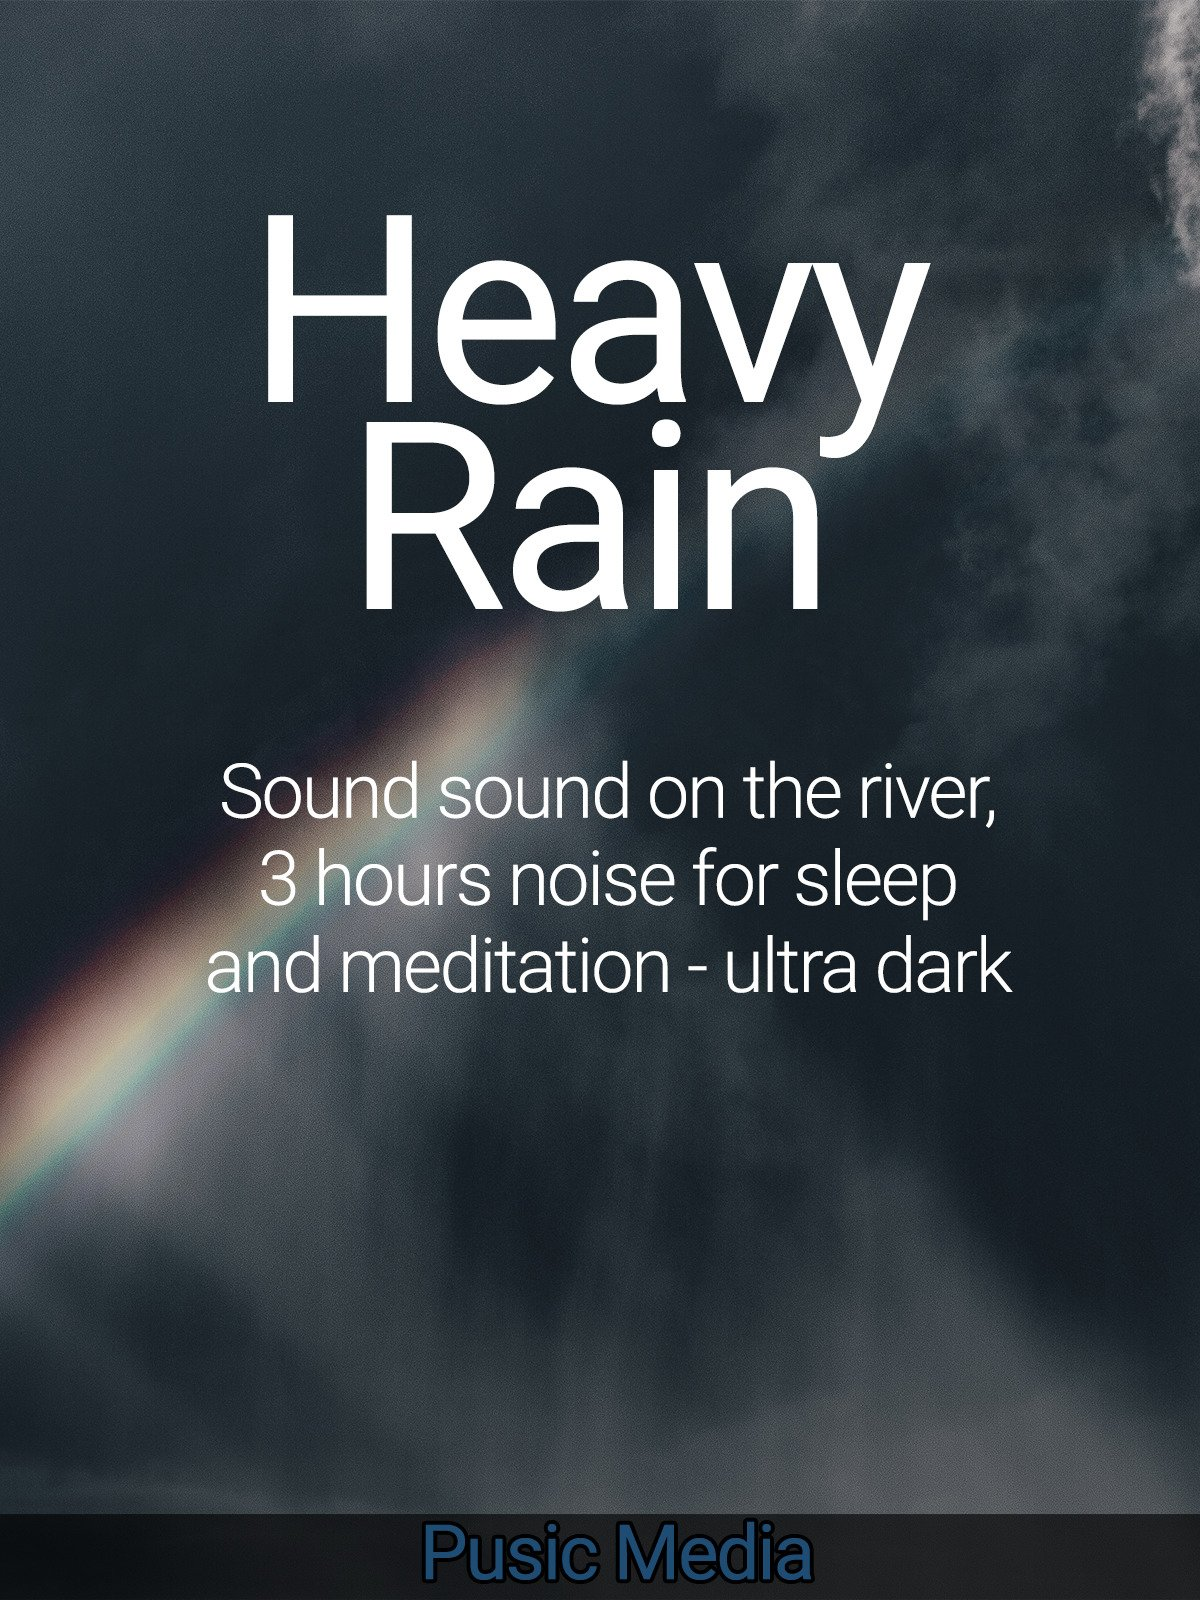 Clip: Heavy Rain Sound on the River, 3 hours noise for sleep and meditation